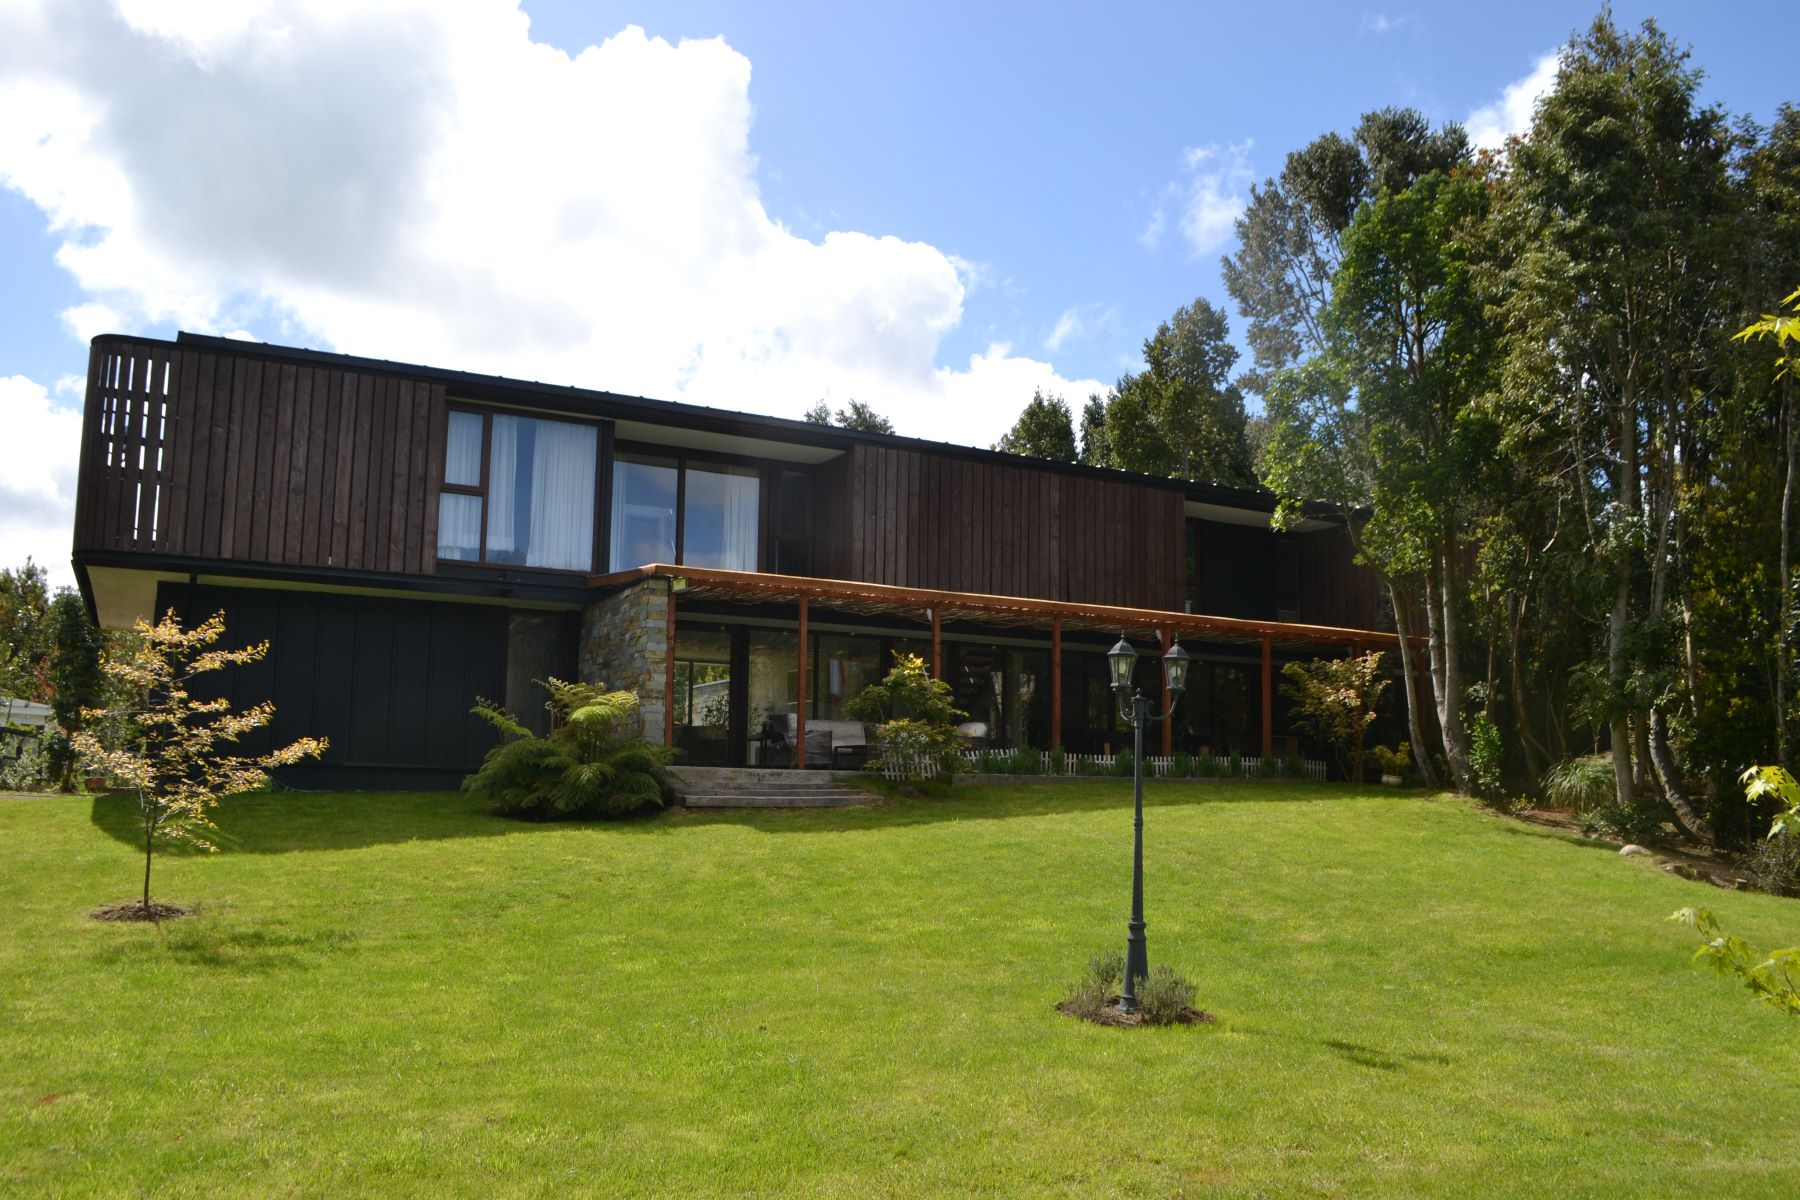 Single Family Home for Sale at Wonderful house in sector of great appreciation. Puerto Montt, Los Lagos, Chile